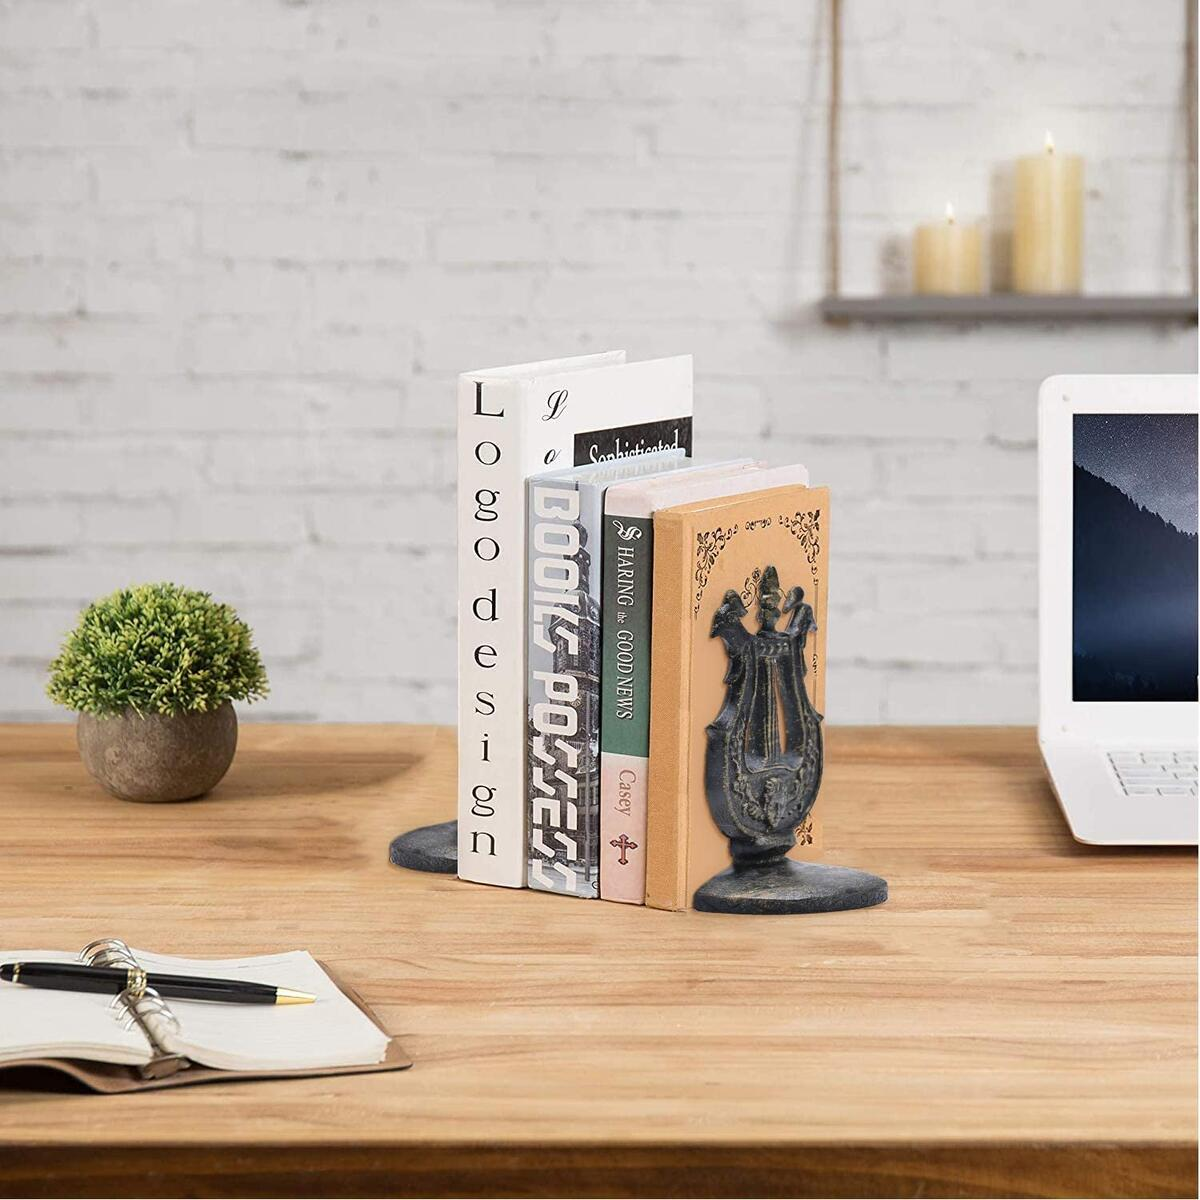 Via Moi Farmhouse Cast Iron Decorative Bookends for Heavy Books Book ends Decorative for Bookshelf Book Stoppers Bookend Book end Holders for Shelves